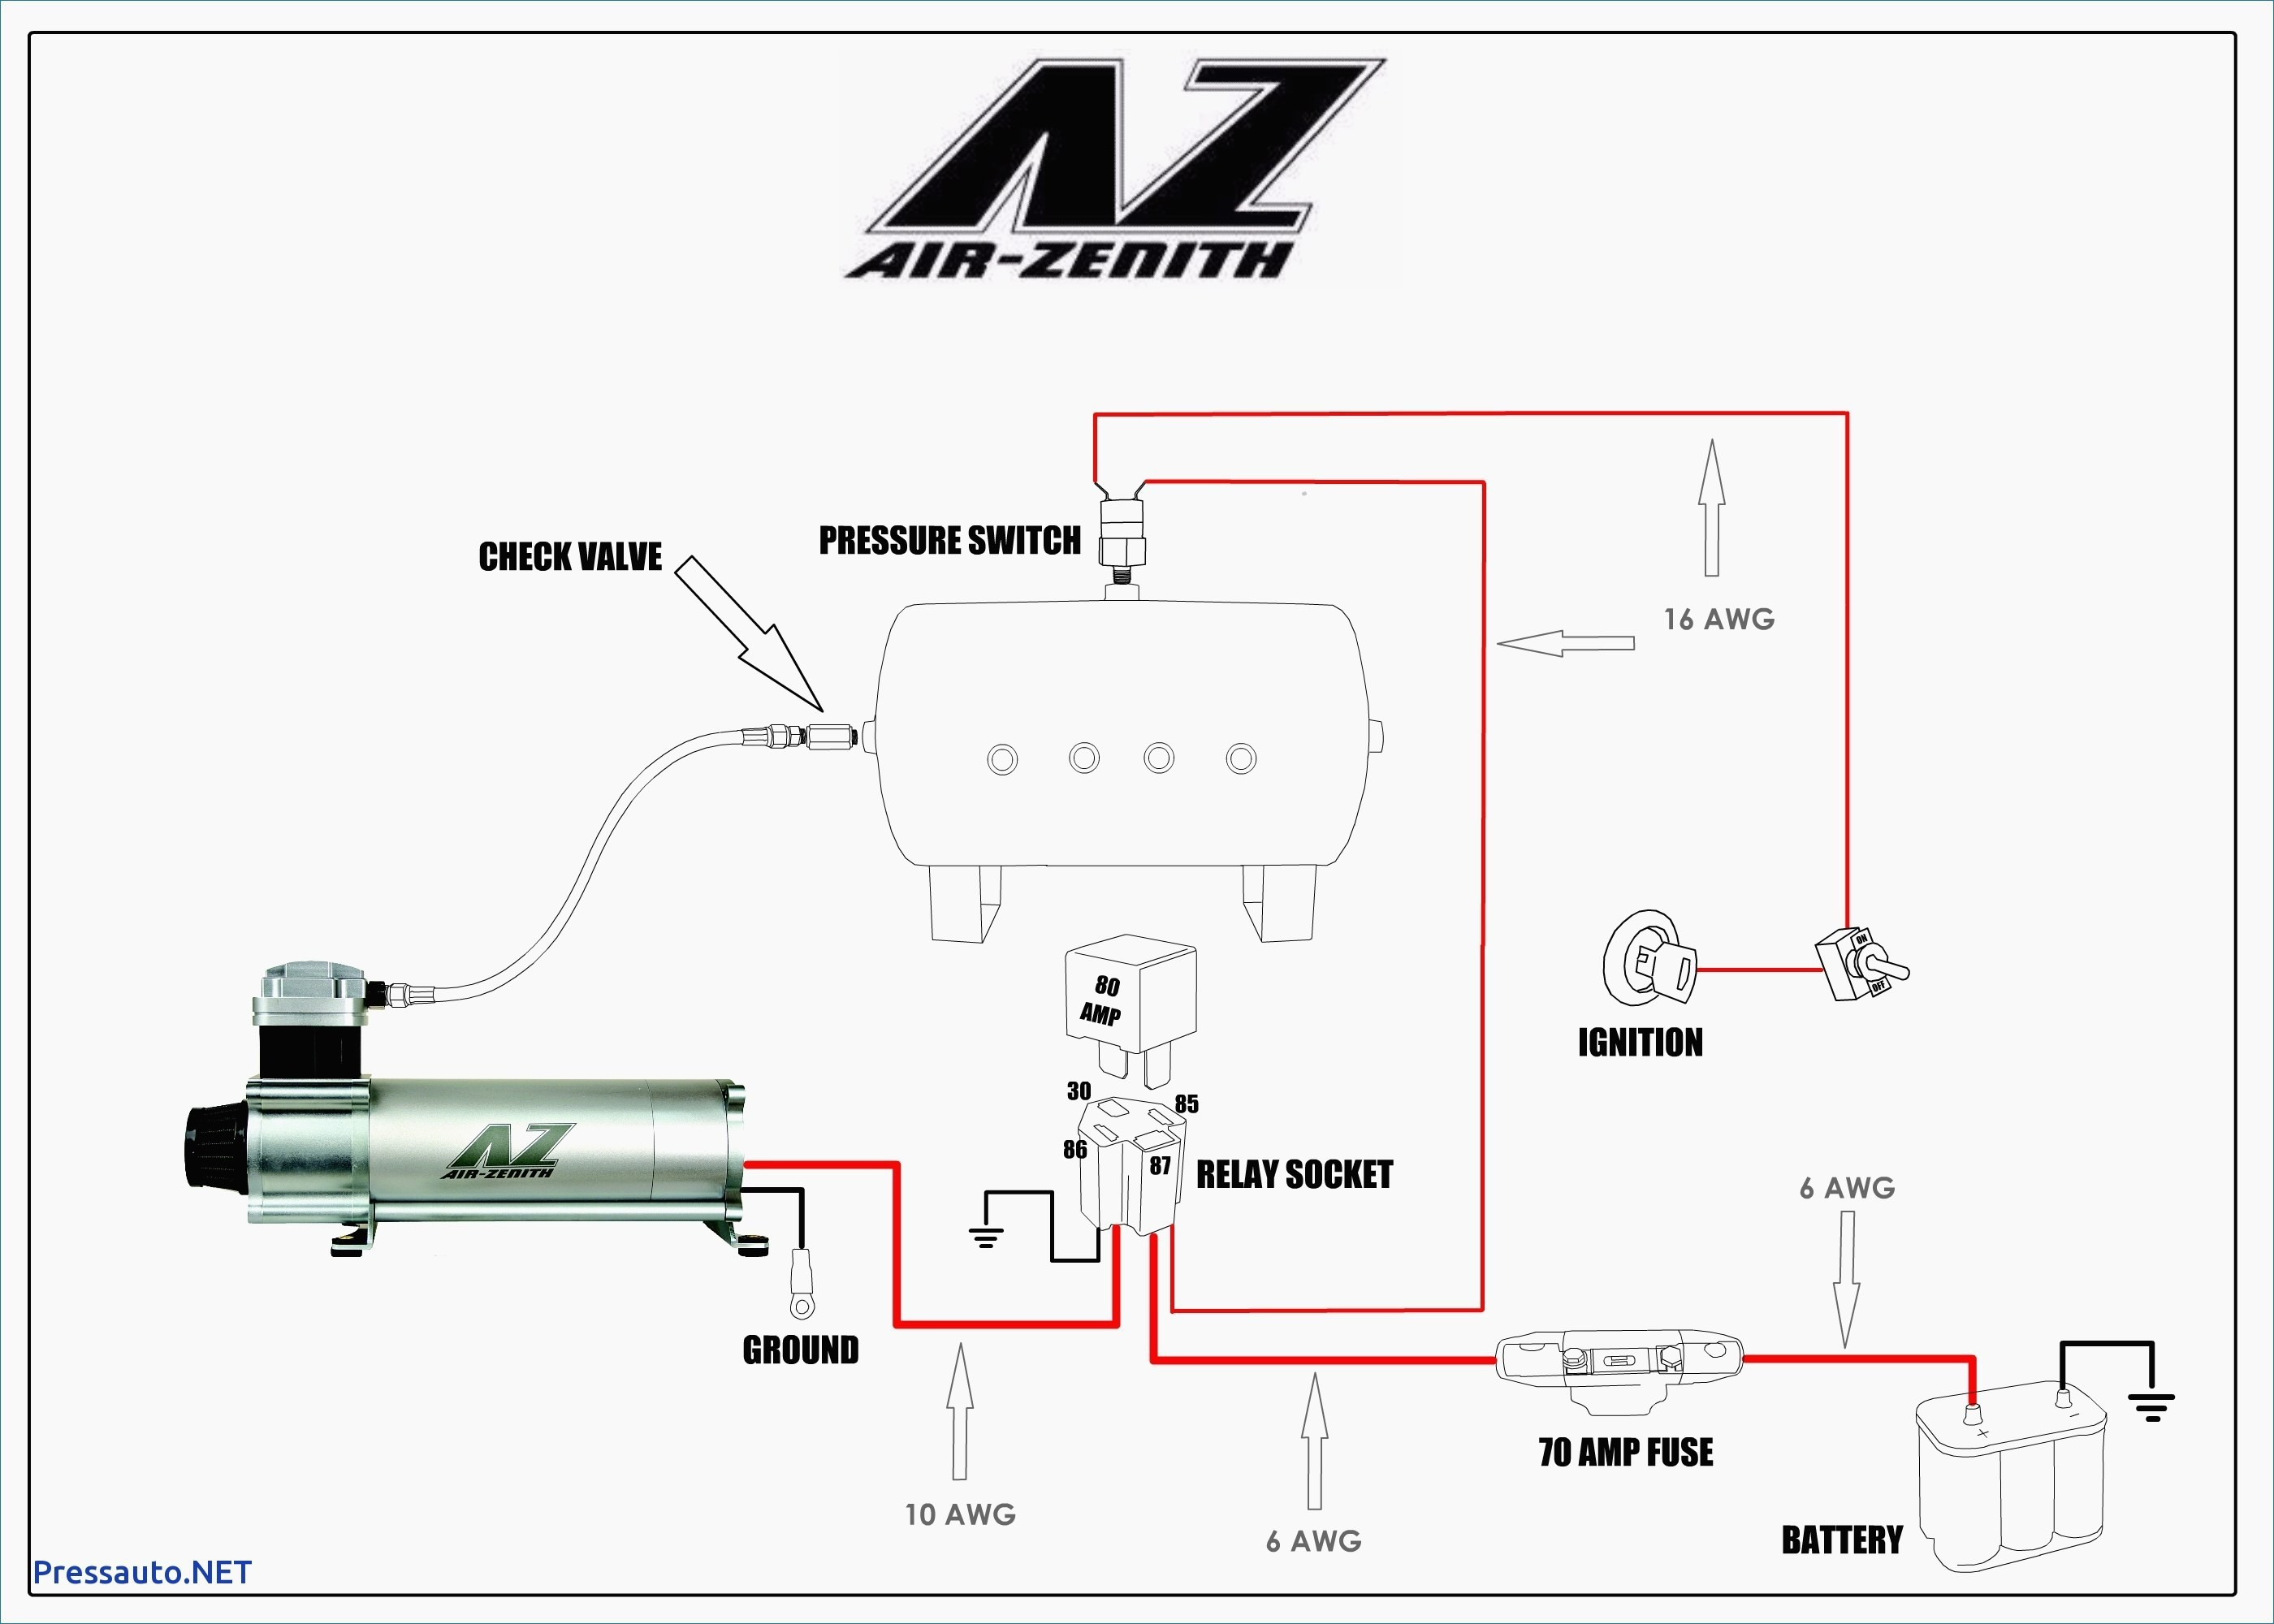 DIAGRAM] Yankee Air Horn Wiring Diagram - 87 Cherokee Wiring Diagram List  diagnose.mon1erinstrument.frmon1erinstrument.fr